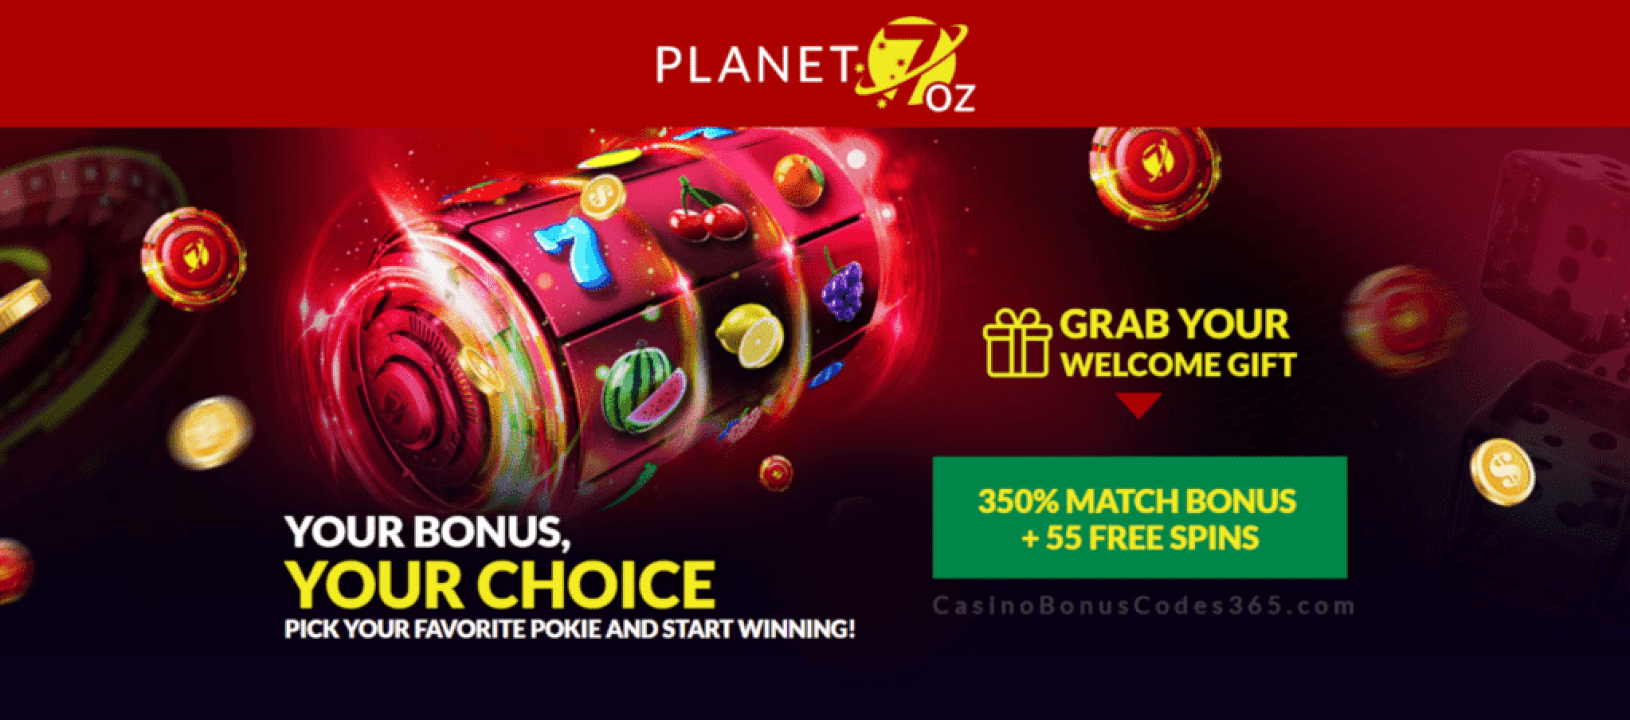 Planet 7 OZ Casino 350% Match Bonus plus 55 FREE Spins Welcome Package